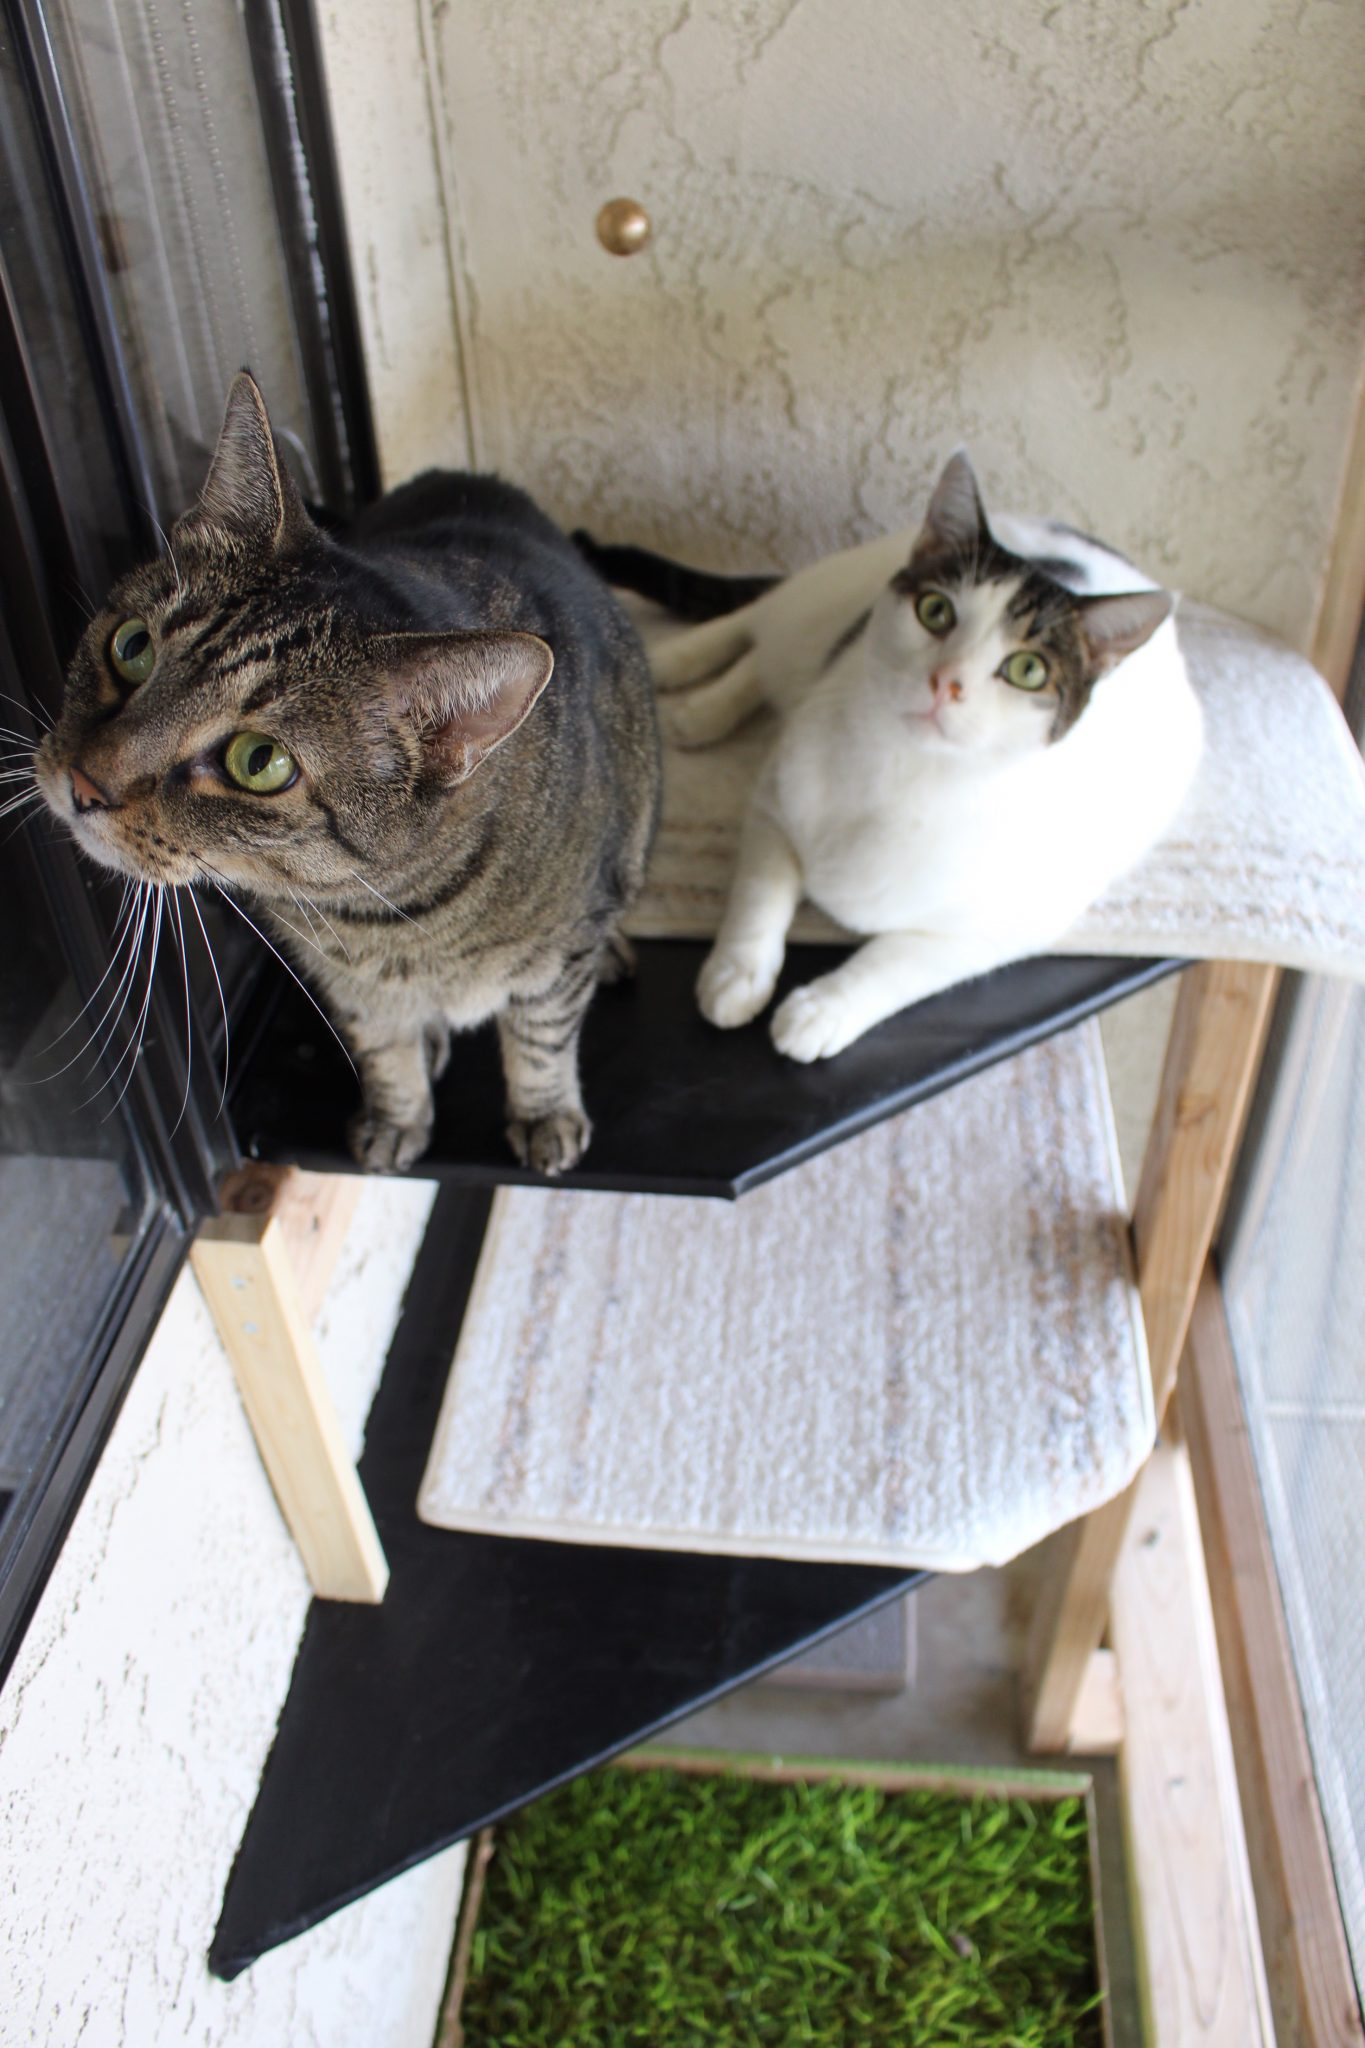 Georgie and Frankie love their catio shelves! (Photo: Alicia Haney)